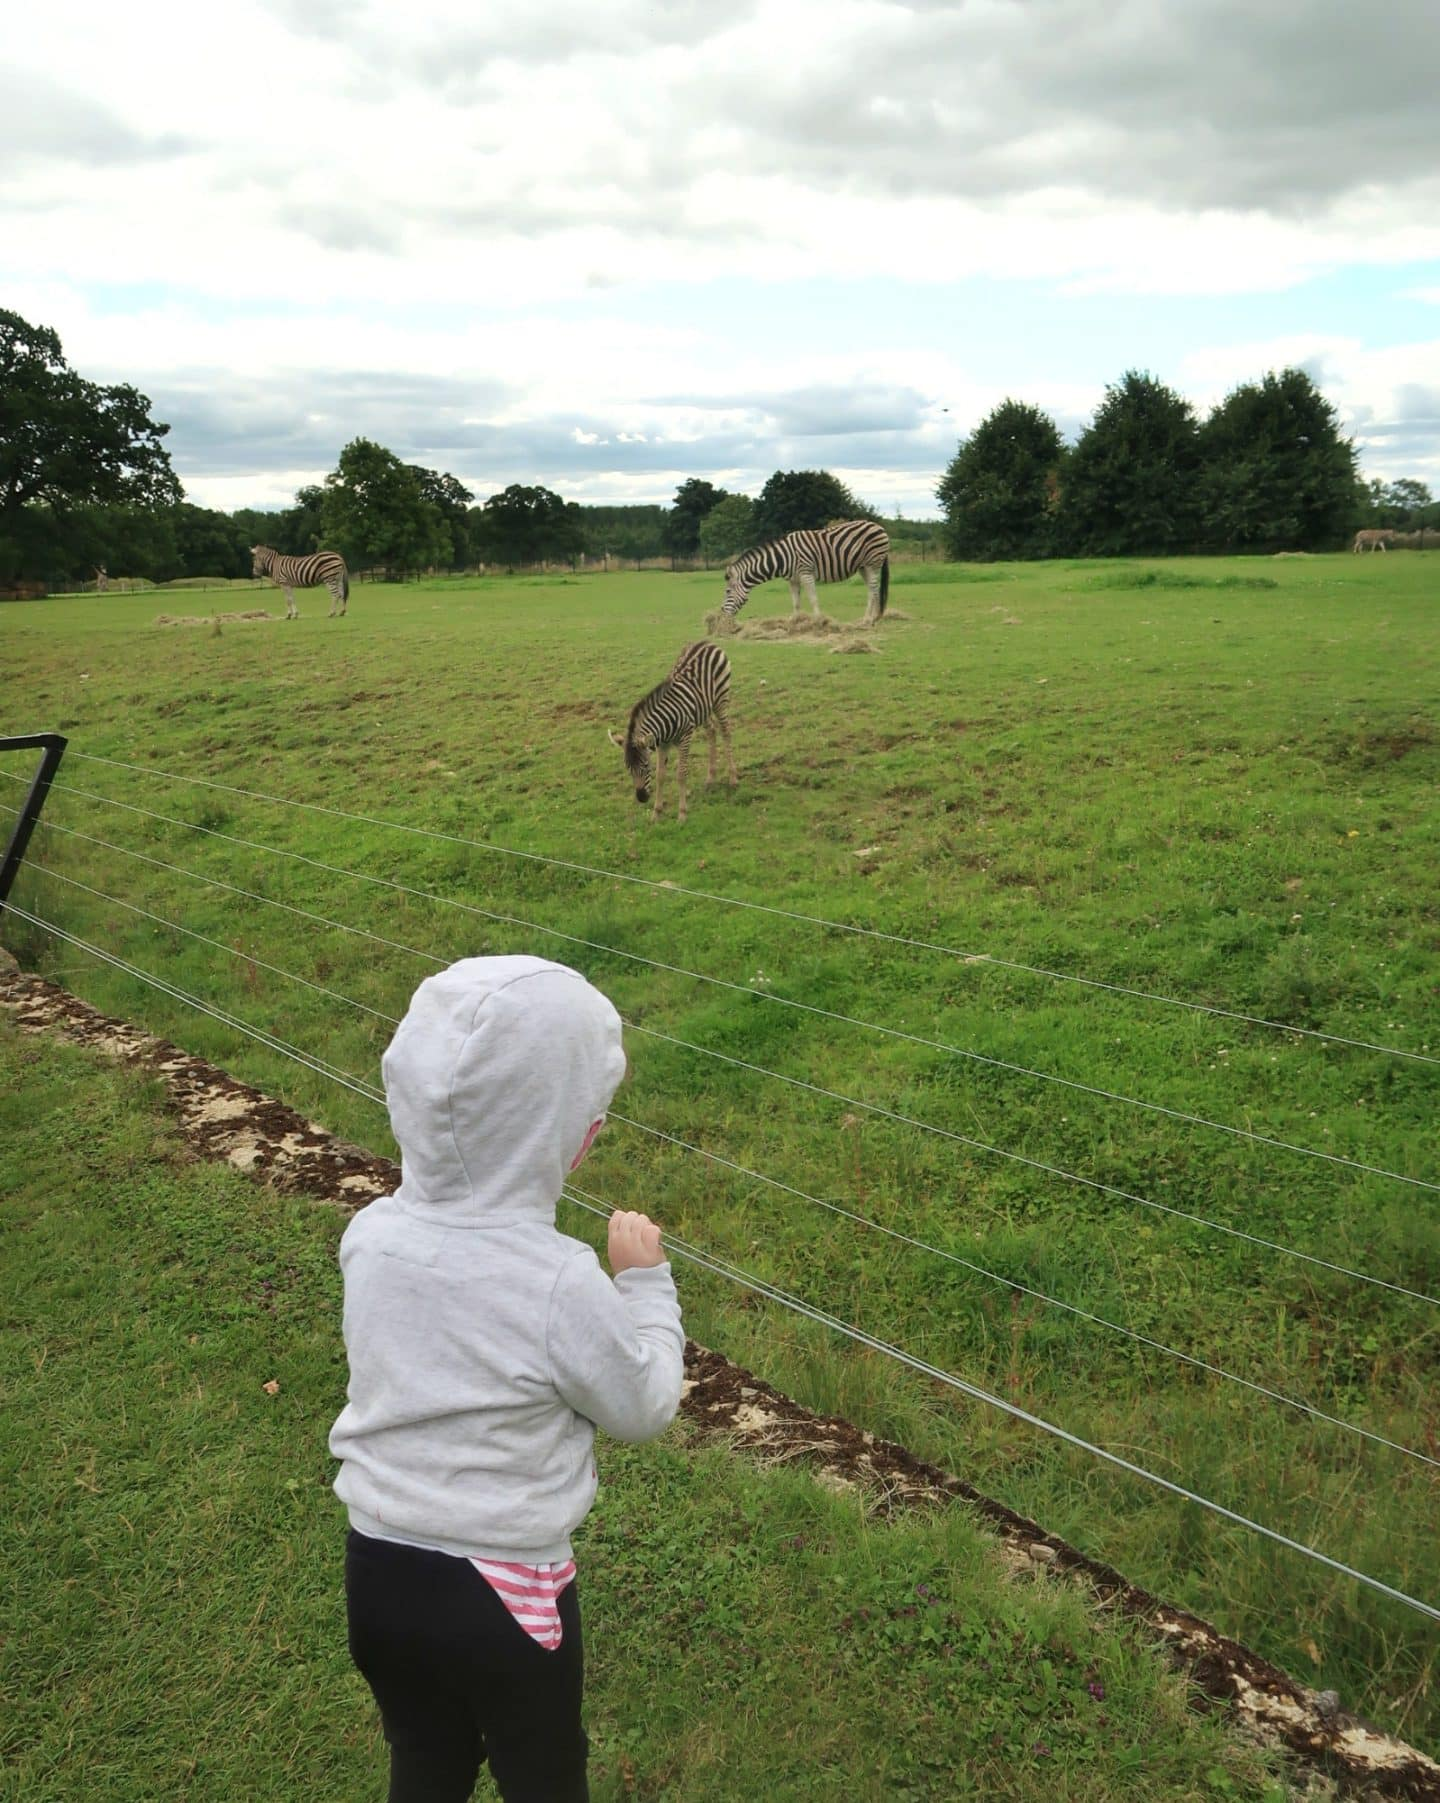 Zebras at Cotswold Wildlife Park